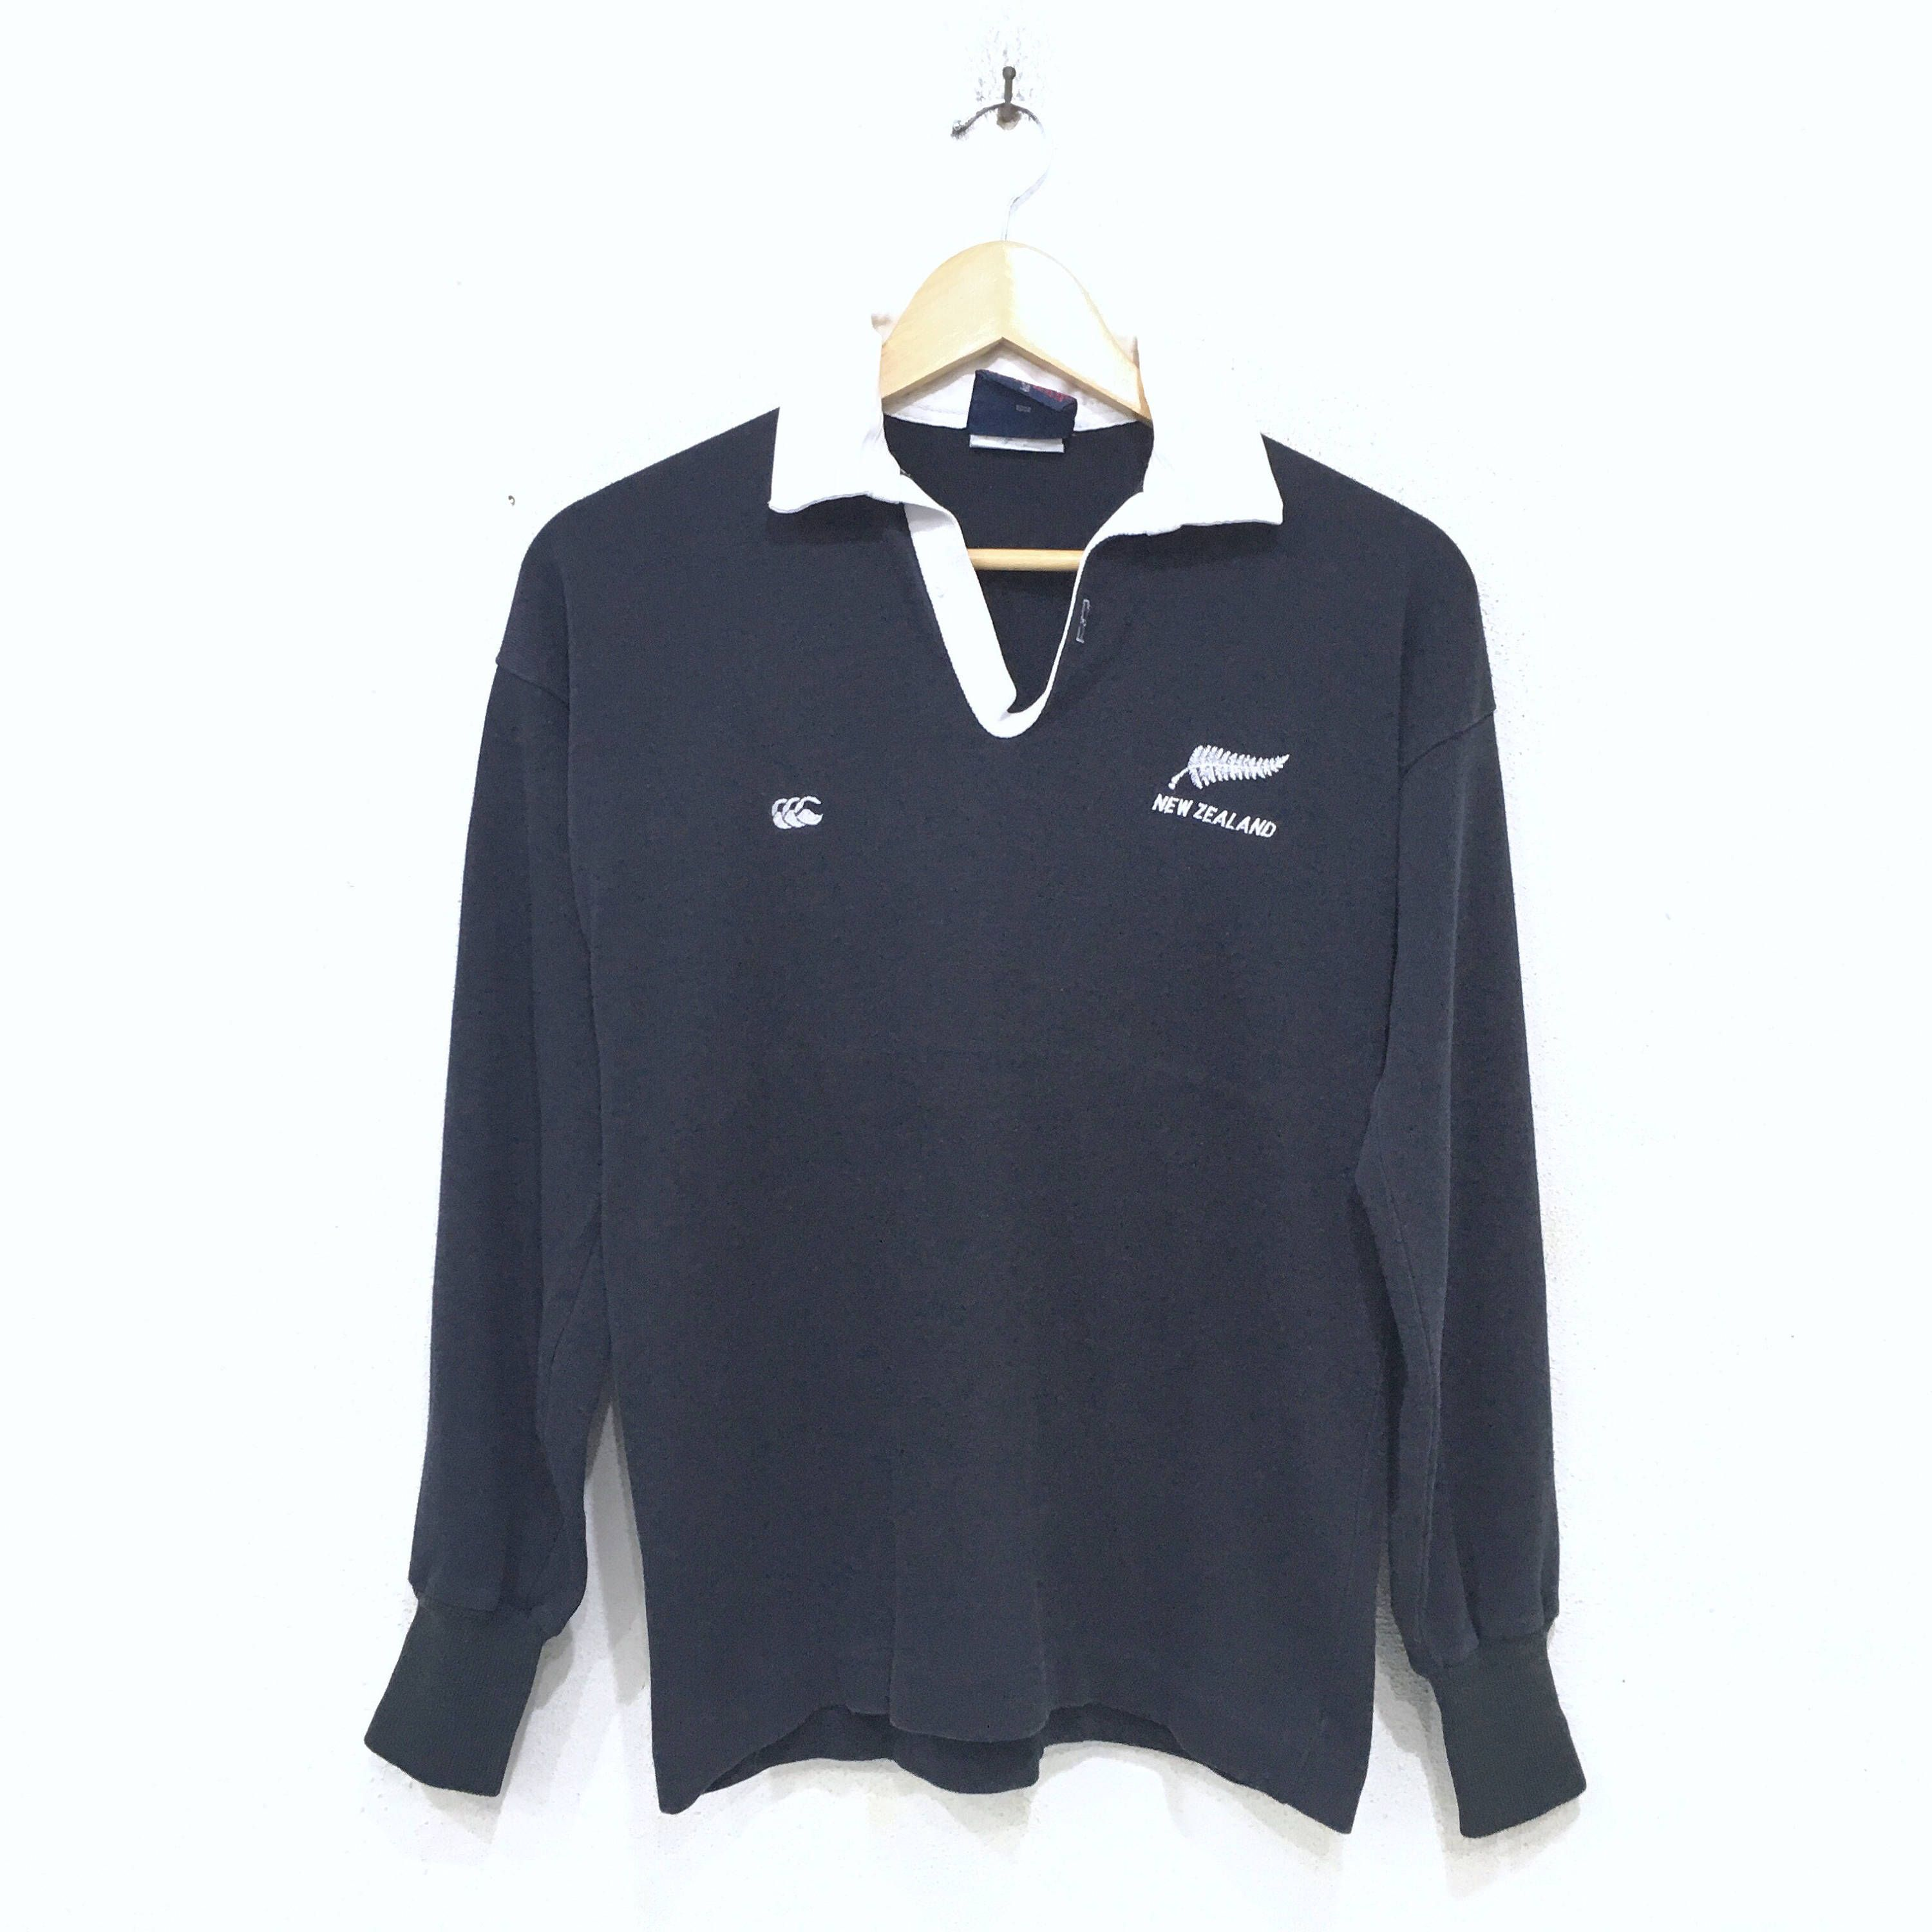 Sale!! Canterbury Of New Zealand Polo Sweatshirt Rugby Large Size BTKRUEko